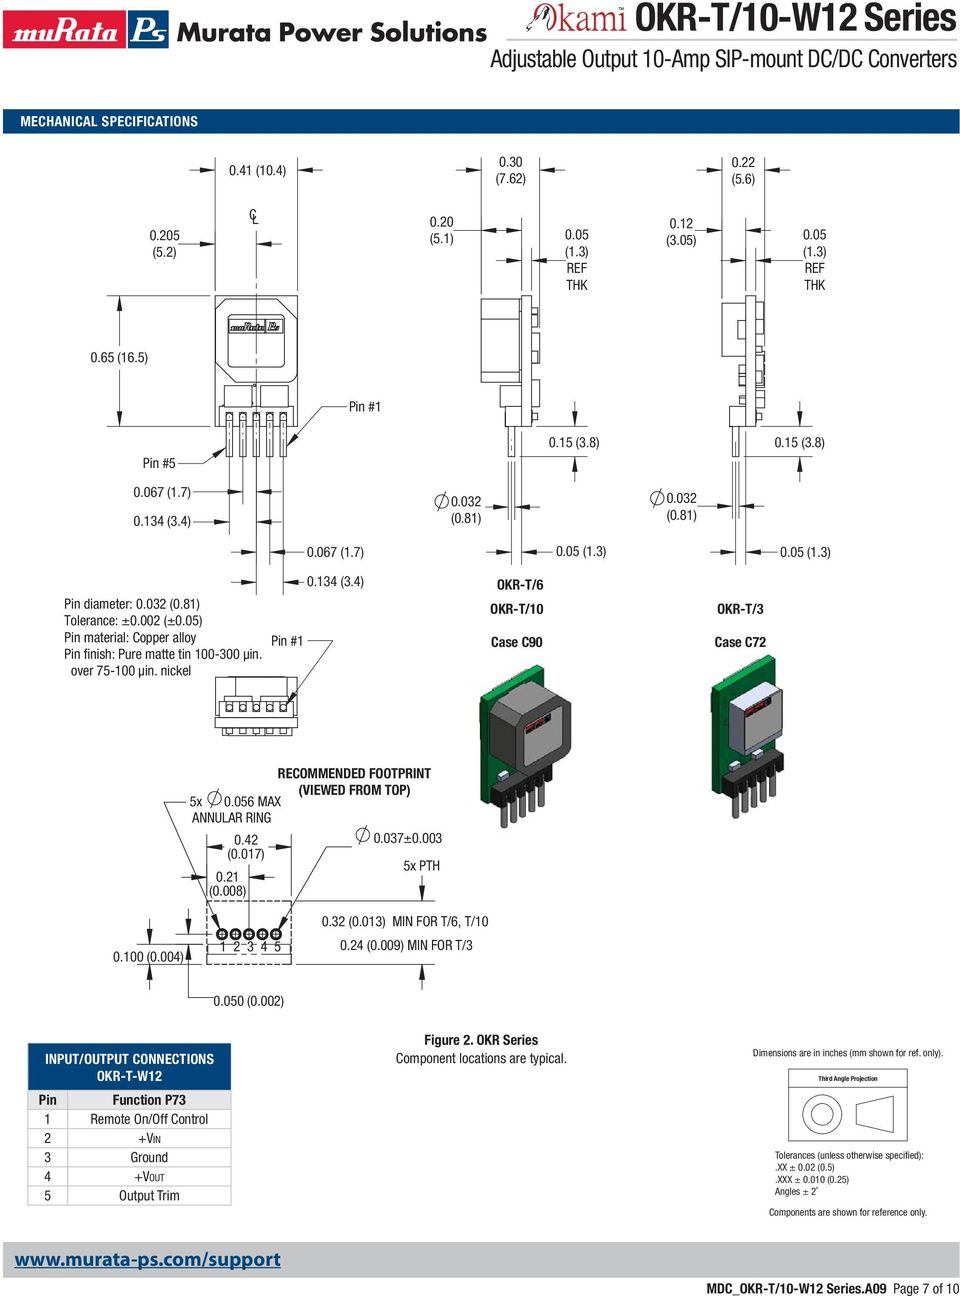 OKR-T/10-W12 Series Adjustable Output 10-Amp SIP-mount DC/DC ... on mod box wiring diagram, e-cig with led wiring diagram, okr t 10 mod diagram, okr t6c w1-2,